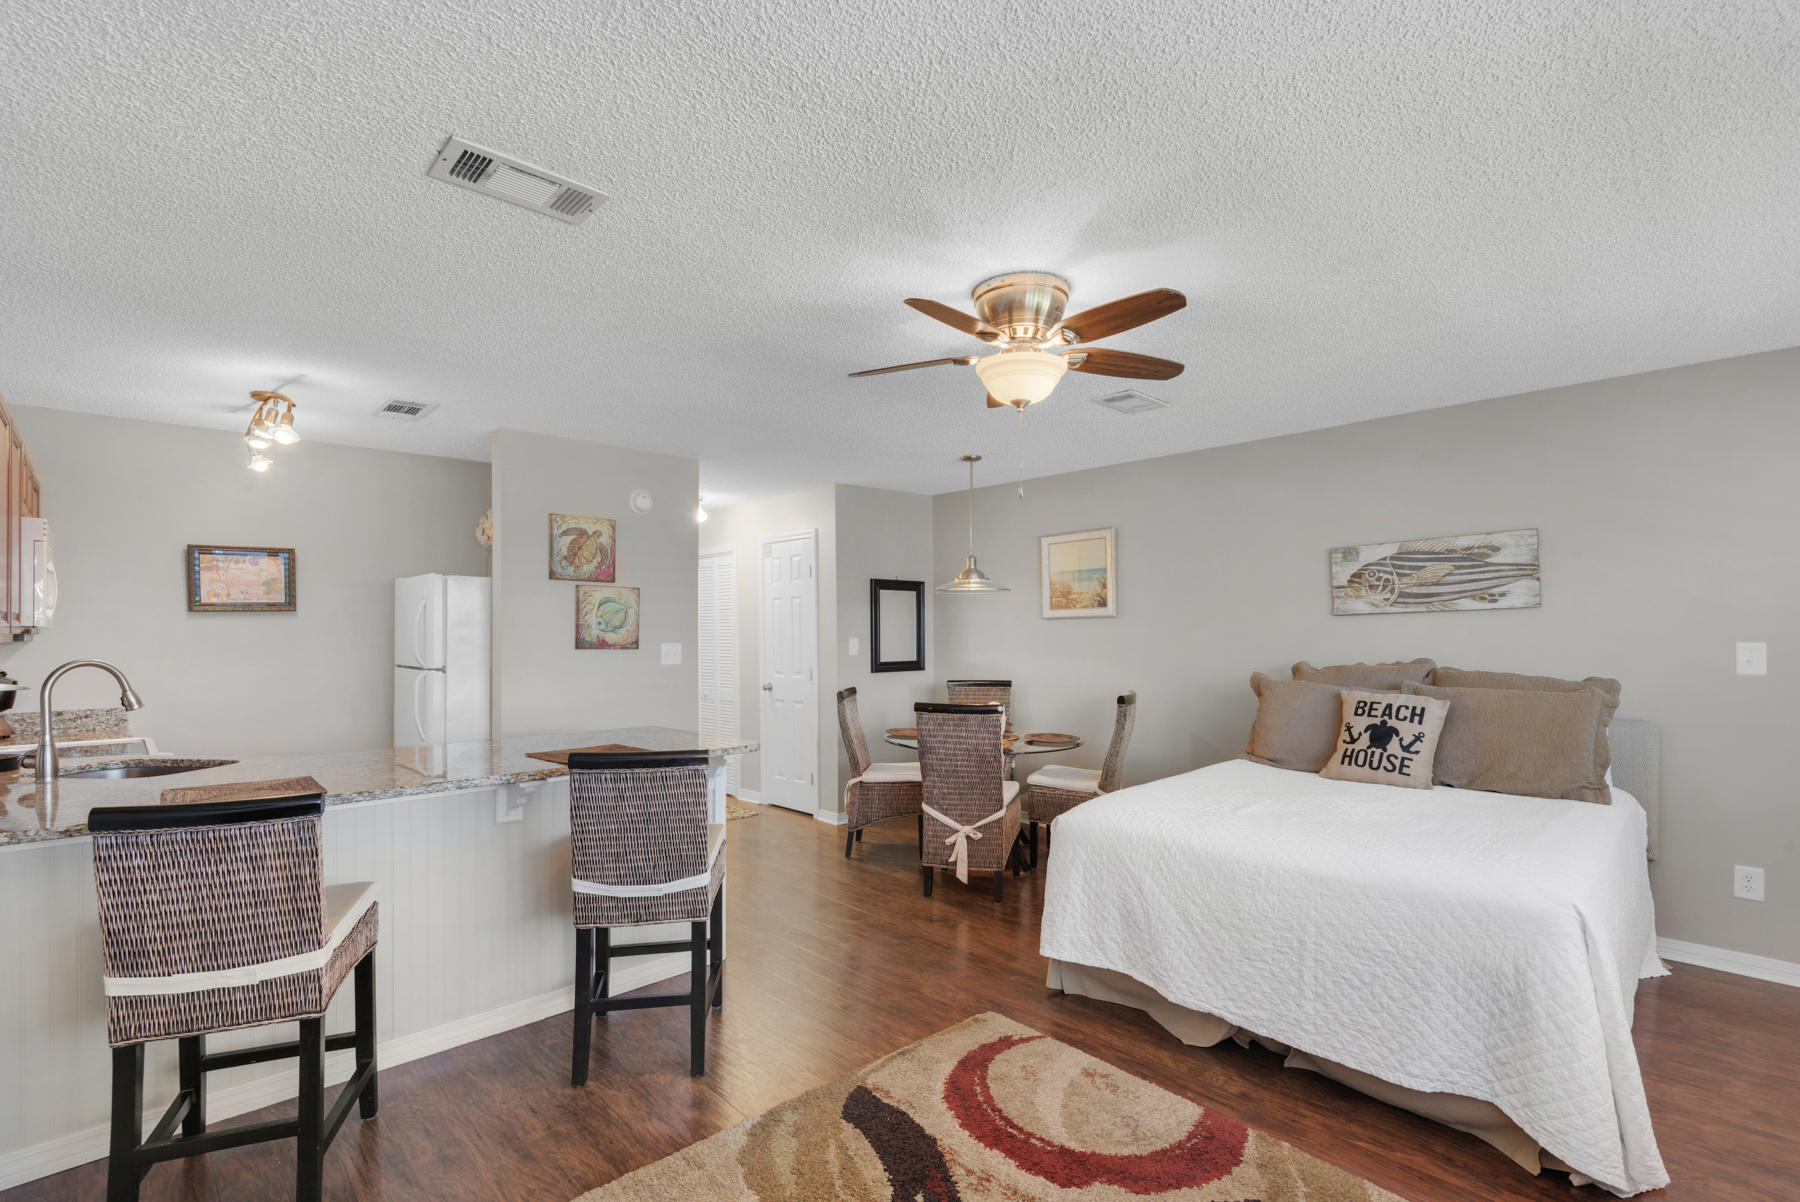 Motivated seller!!  Are you looking for a place along 30-A? Look no further. Beautifully updated studio directly across the street from the beach.  Hidden Beach Villas is in Seagrove within walking distance to restaurant and shops.  This unit has a new HVAC system added in 2018 and new bedding. There is a community pool.  This unit is booked out through out June and July 2019.  These booking could convey to new owner.  Currently on a short term rental program.